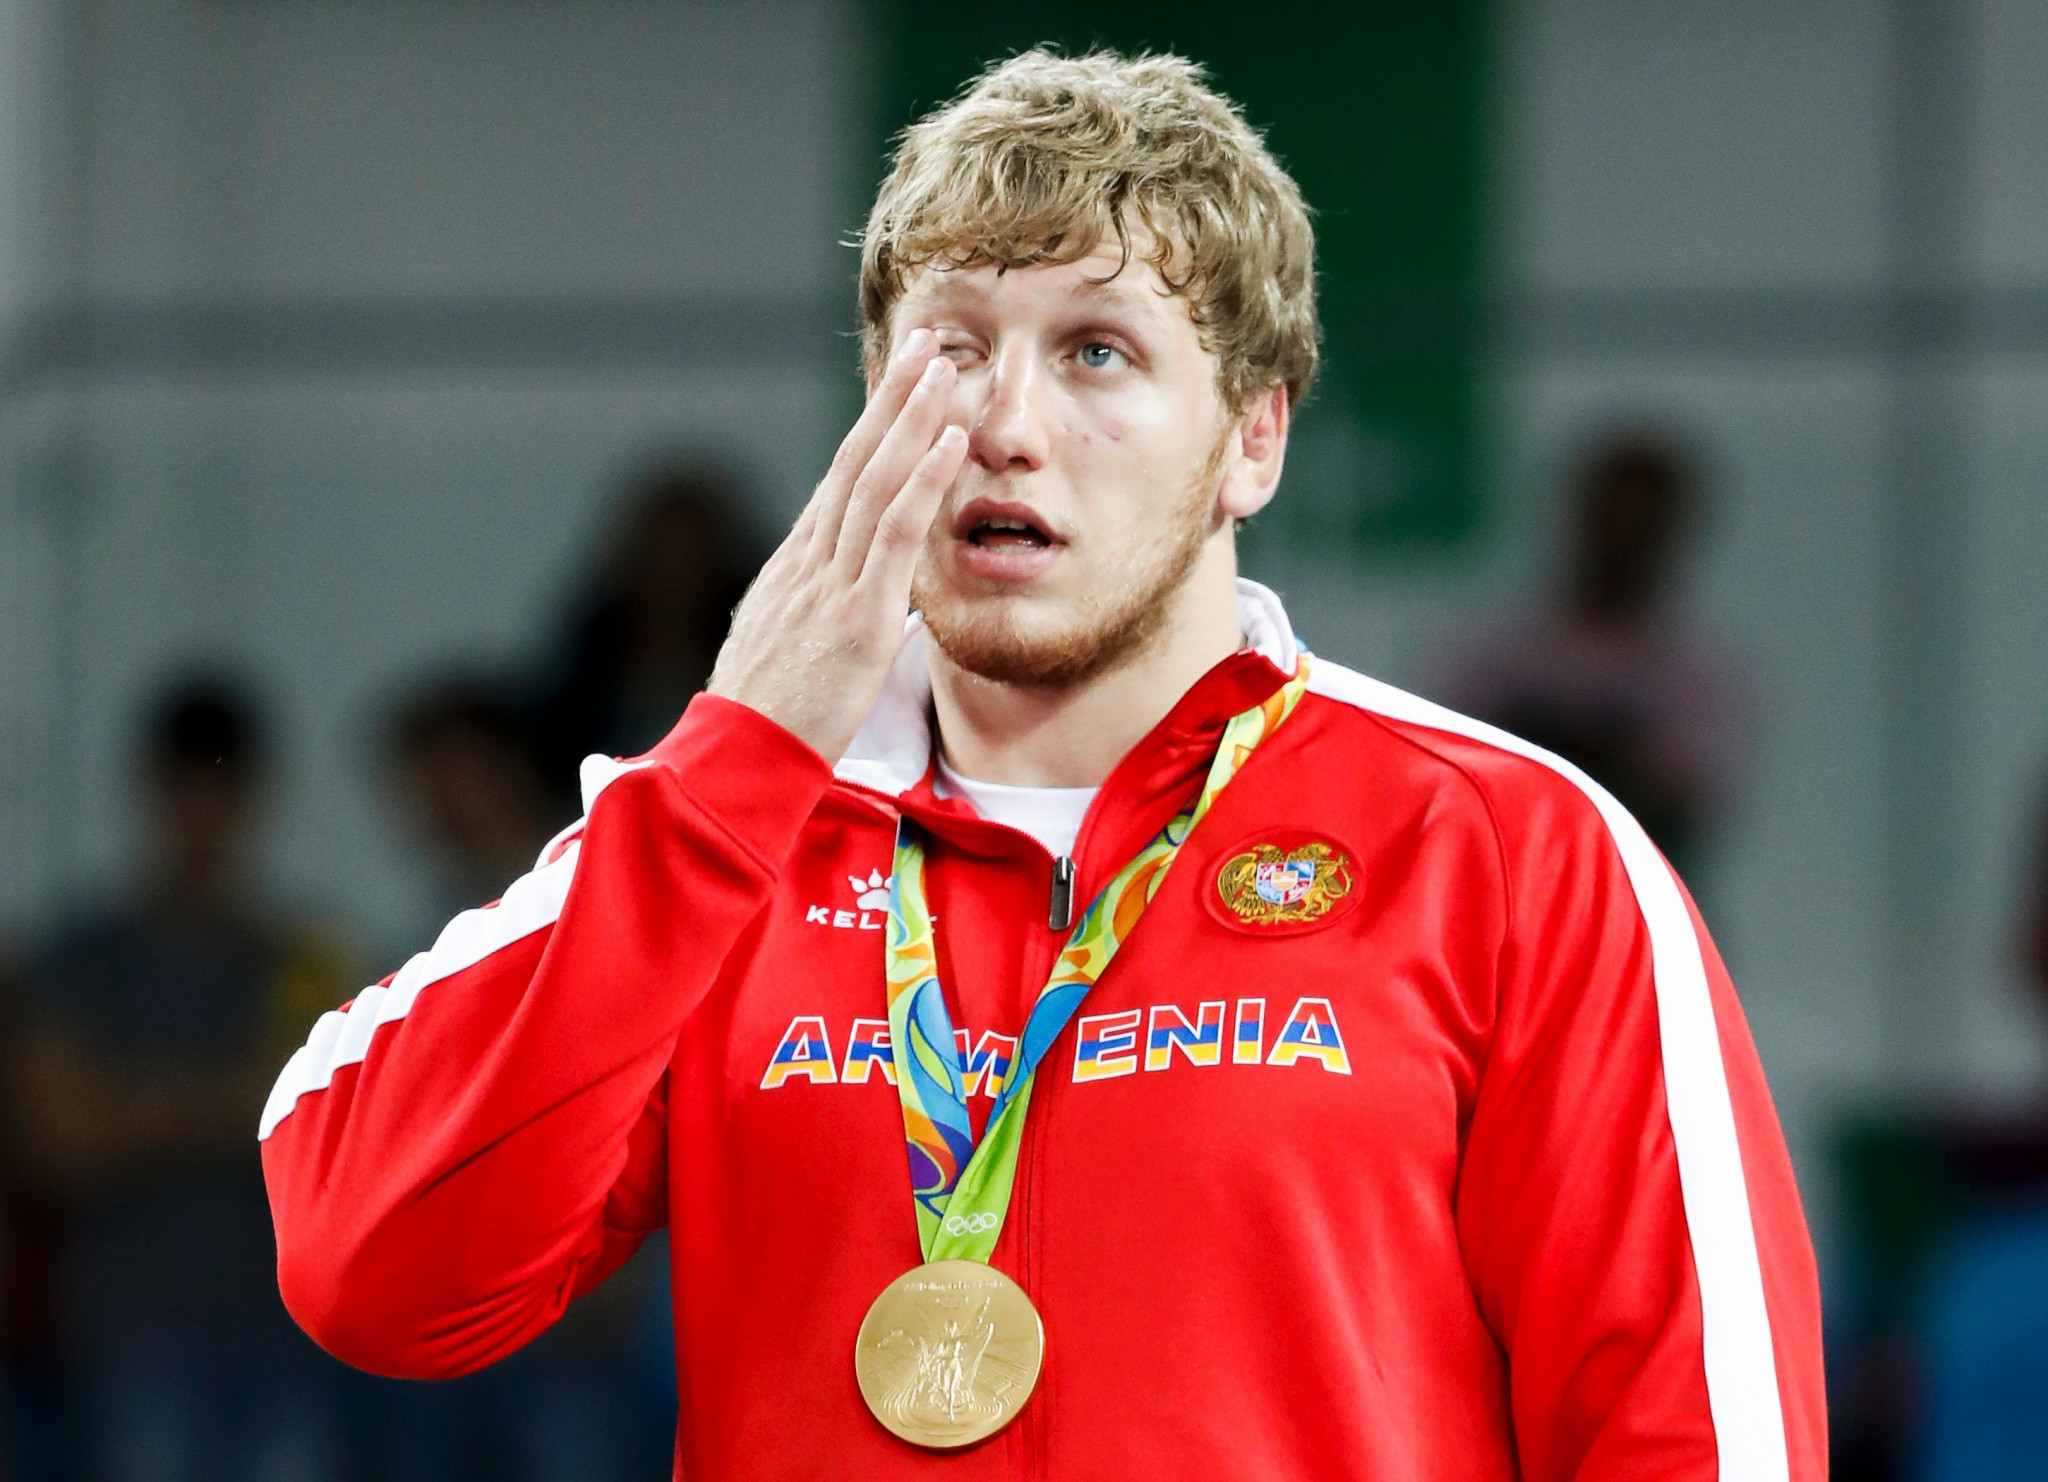 Artur Aleksanyan is one of several Olympic medallists competing in Kaspiysk ©Getty Images